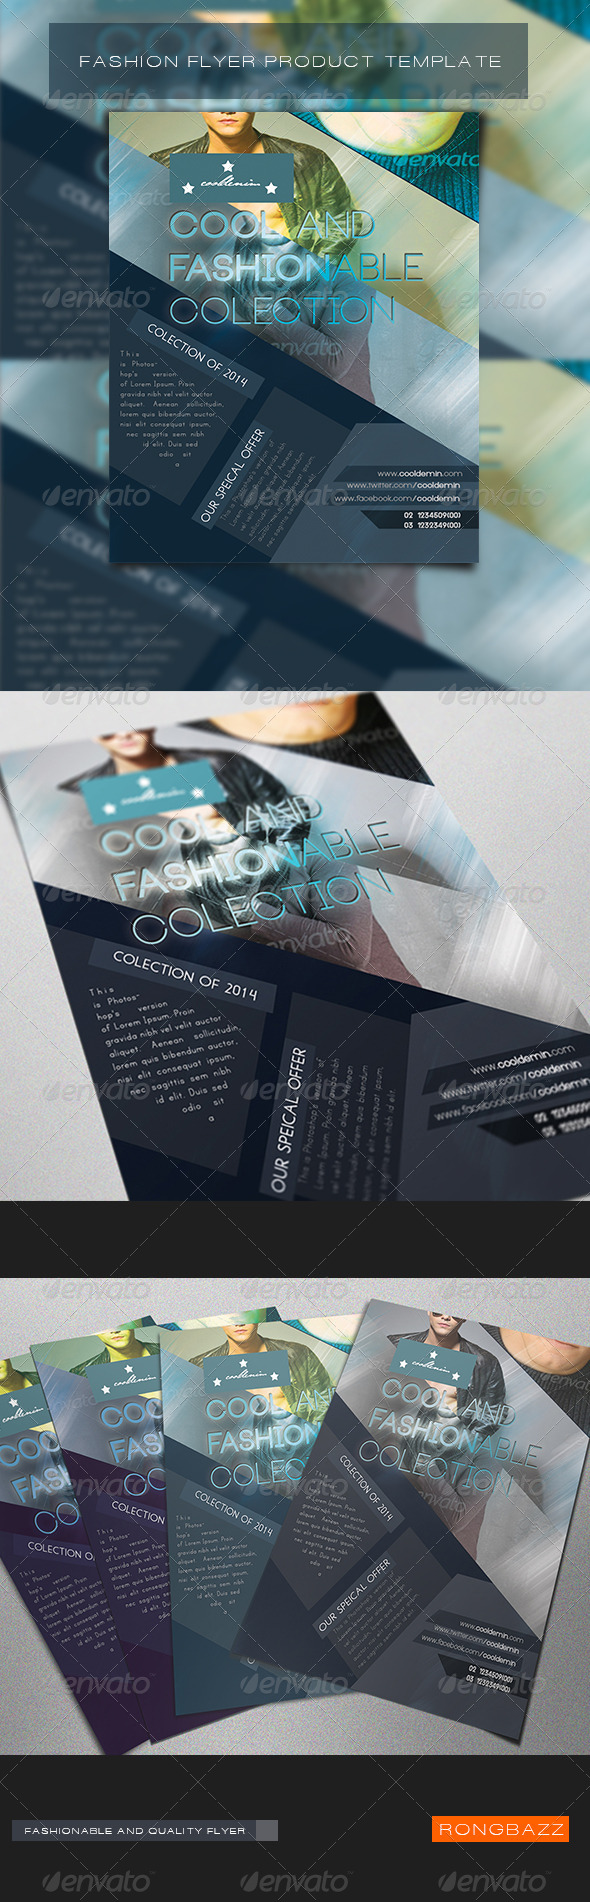 Fashion Product Flyer Template 1.0 - Commerce Flyers